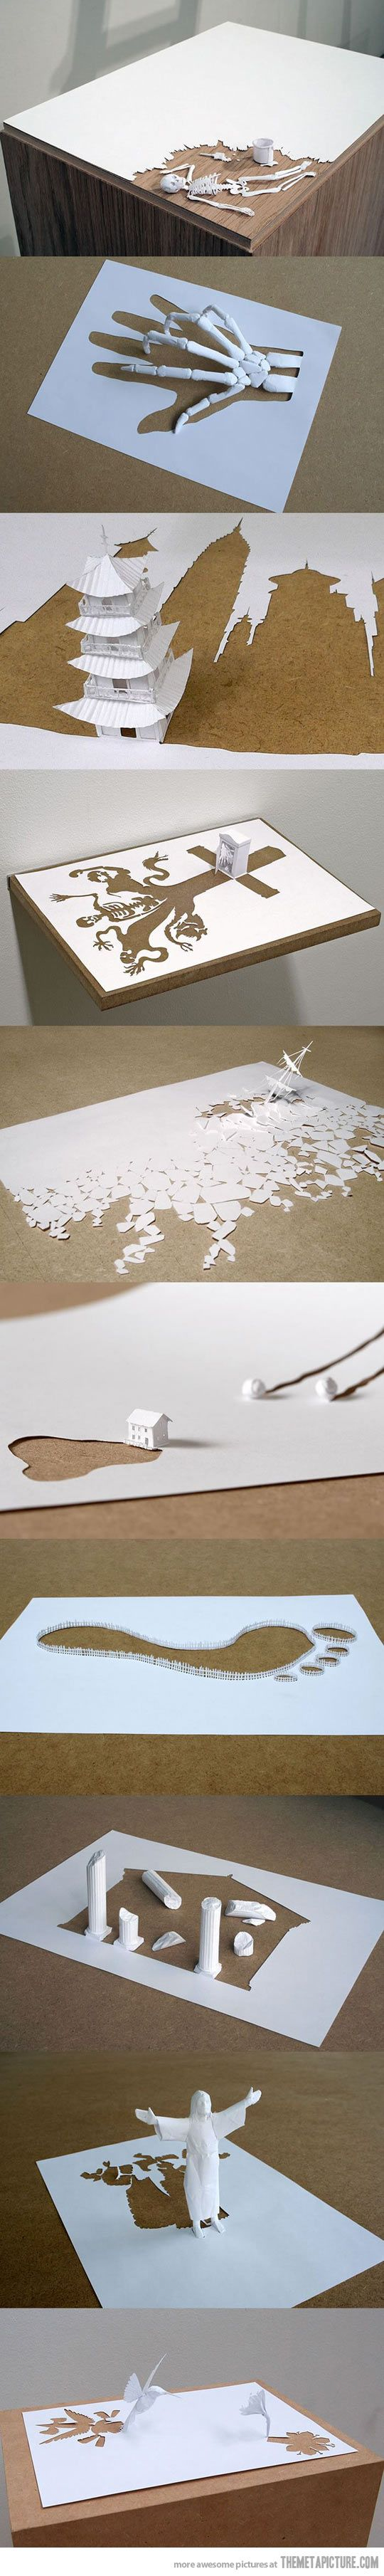 Amazing paper art by Peter Callesen… stupid people and there amazing paper cutting/folding talents -.-